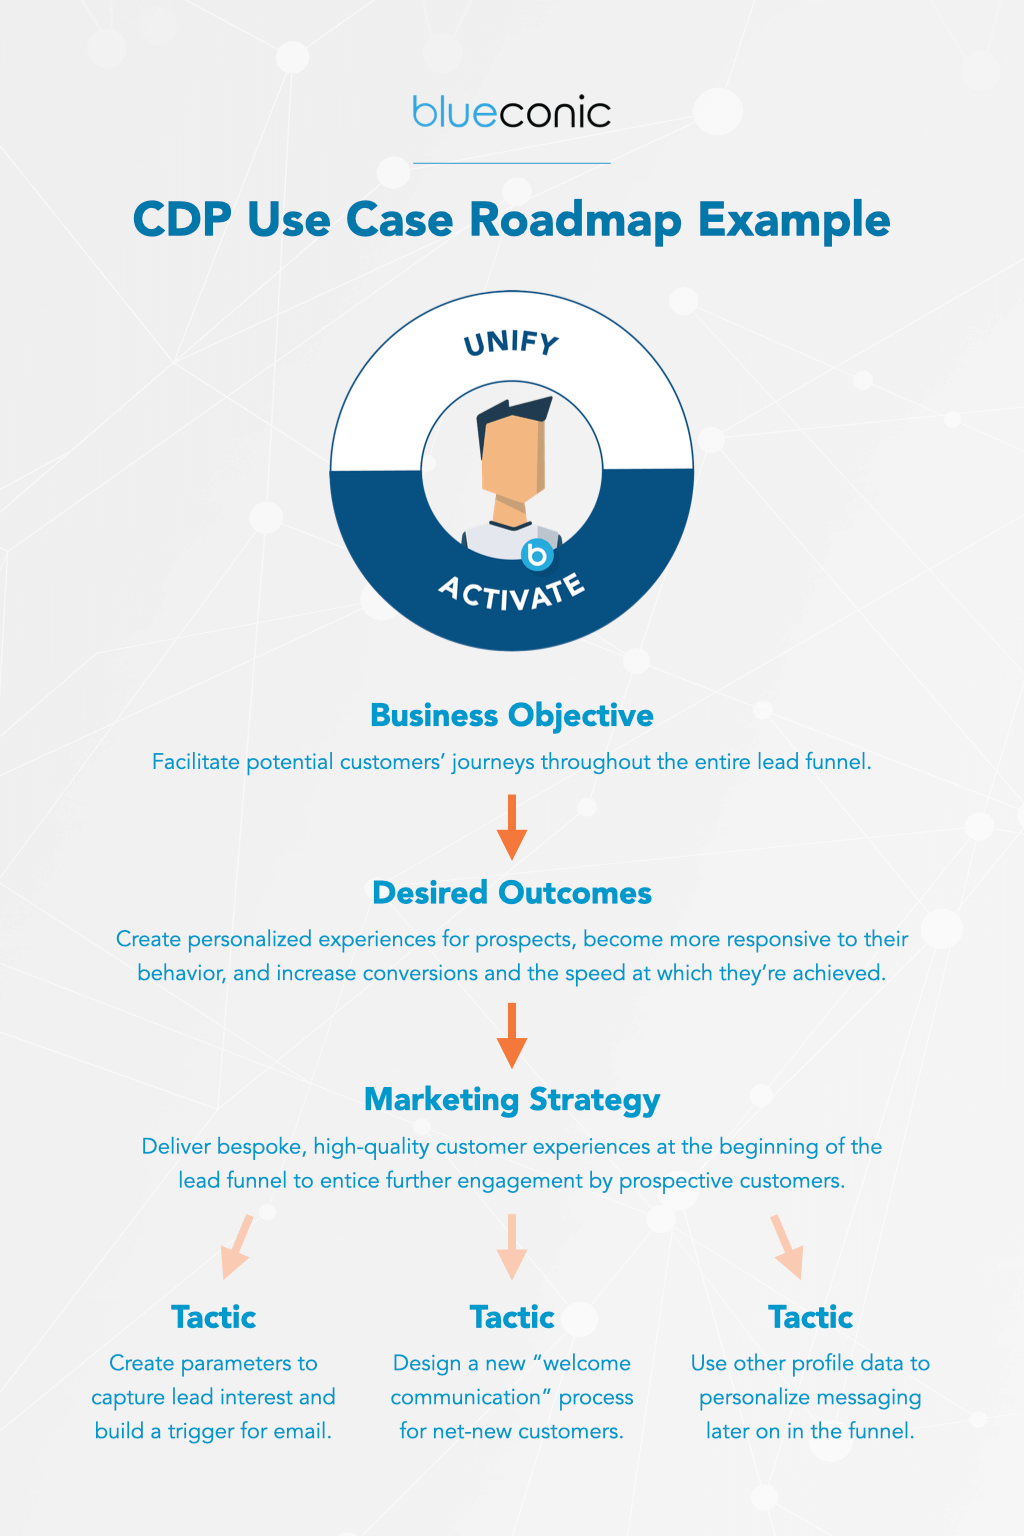 cdp use cases